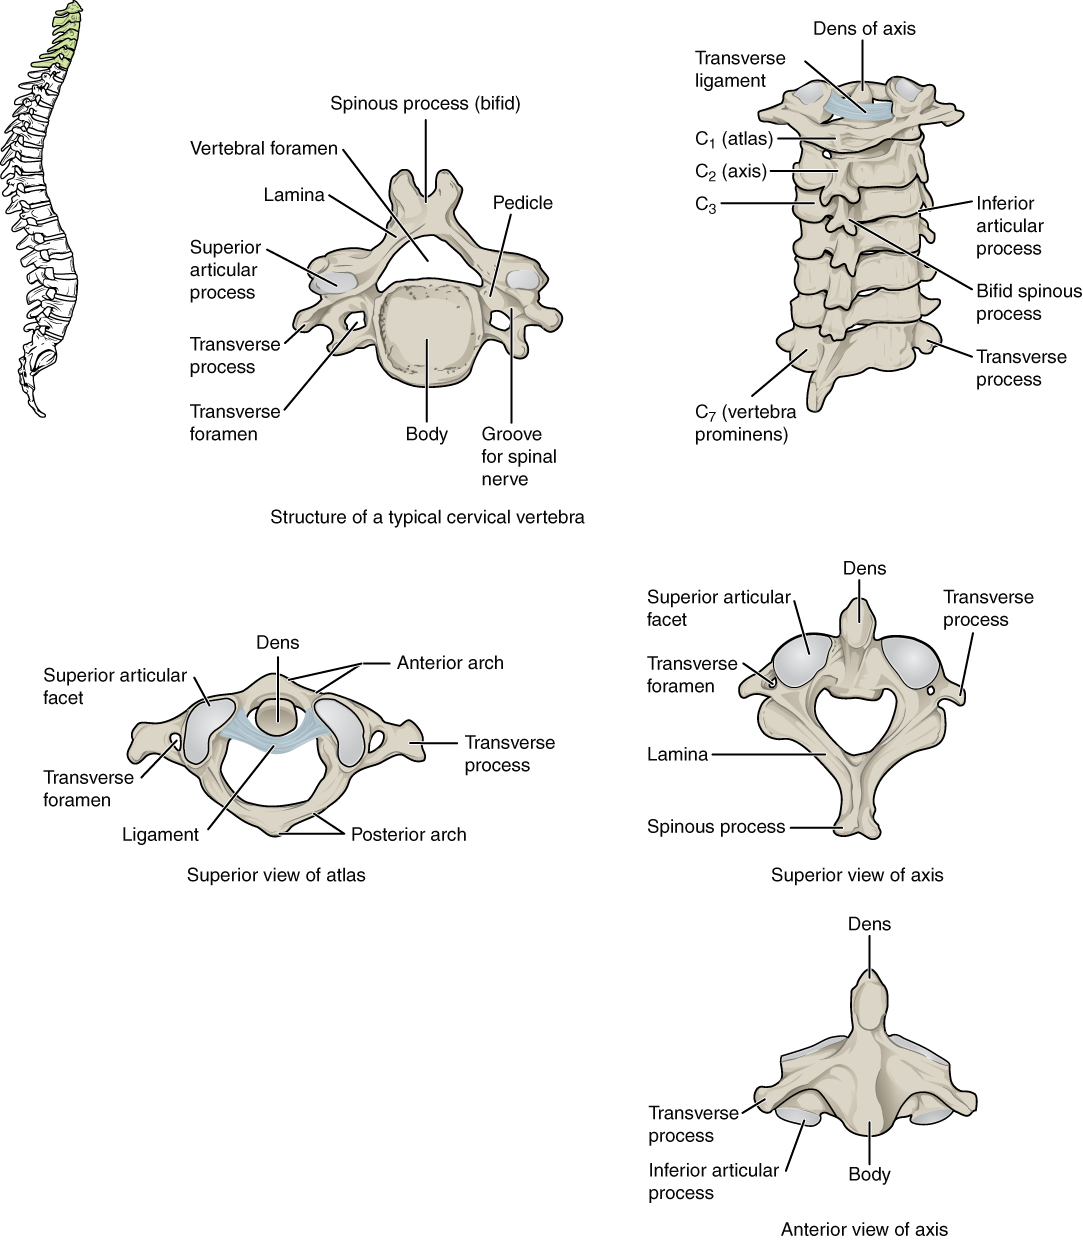 hight resolution of this figure shows the structure of the cervical vertebrae the left panel shows the location